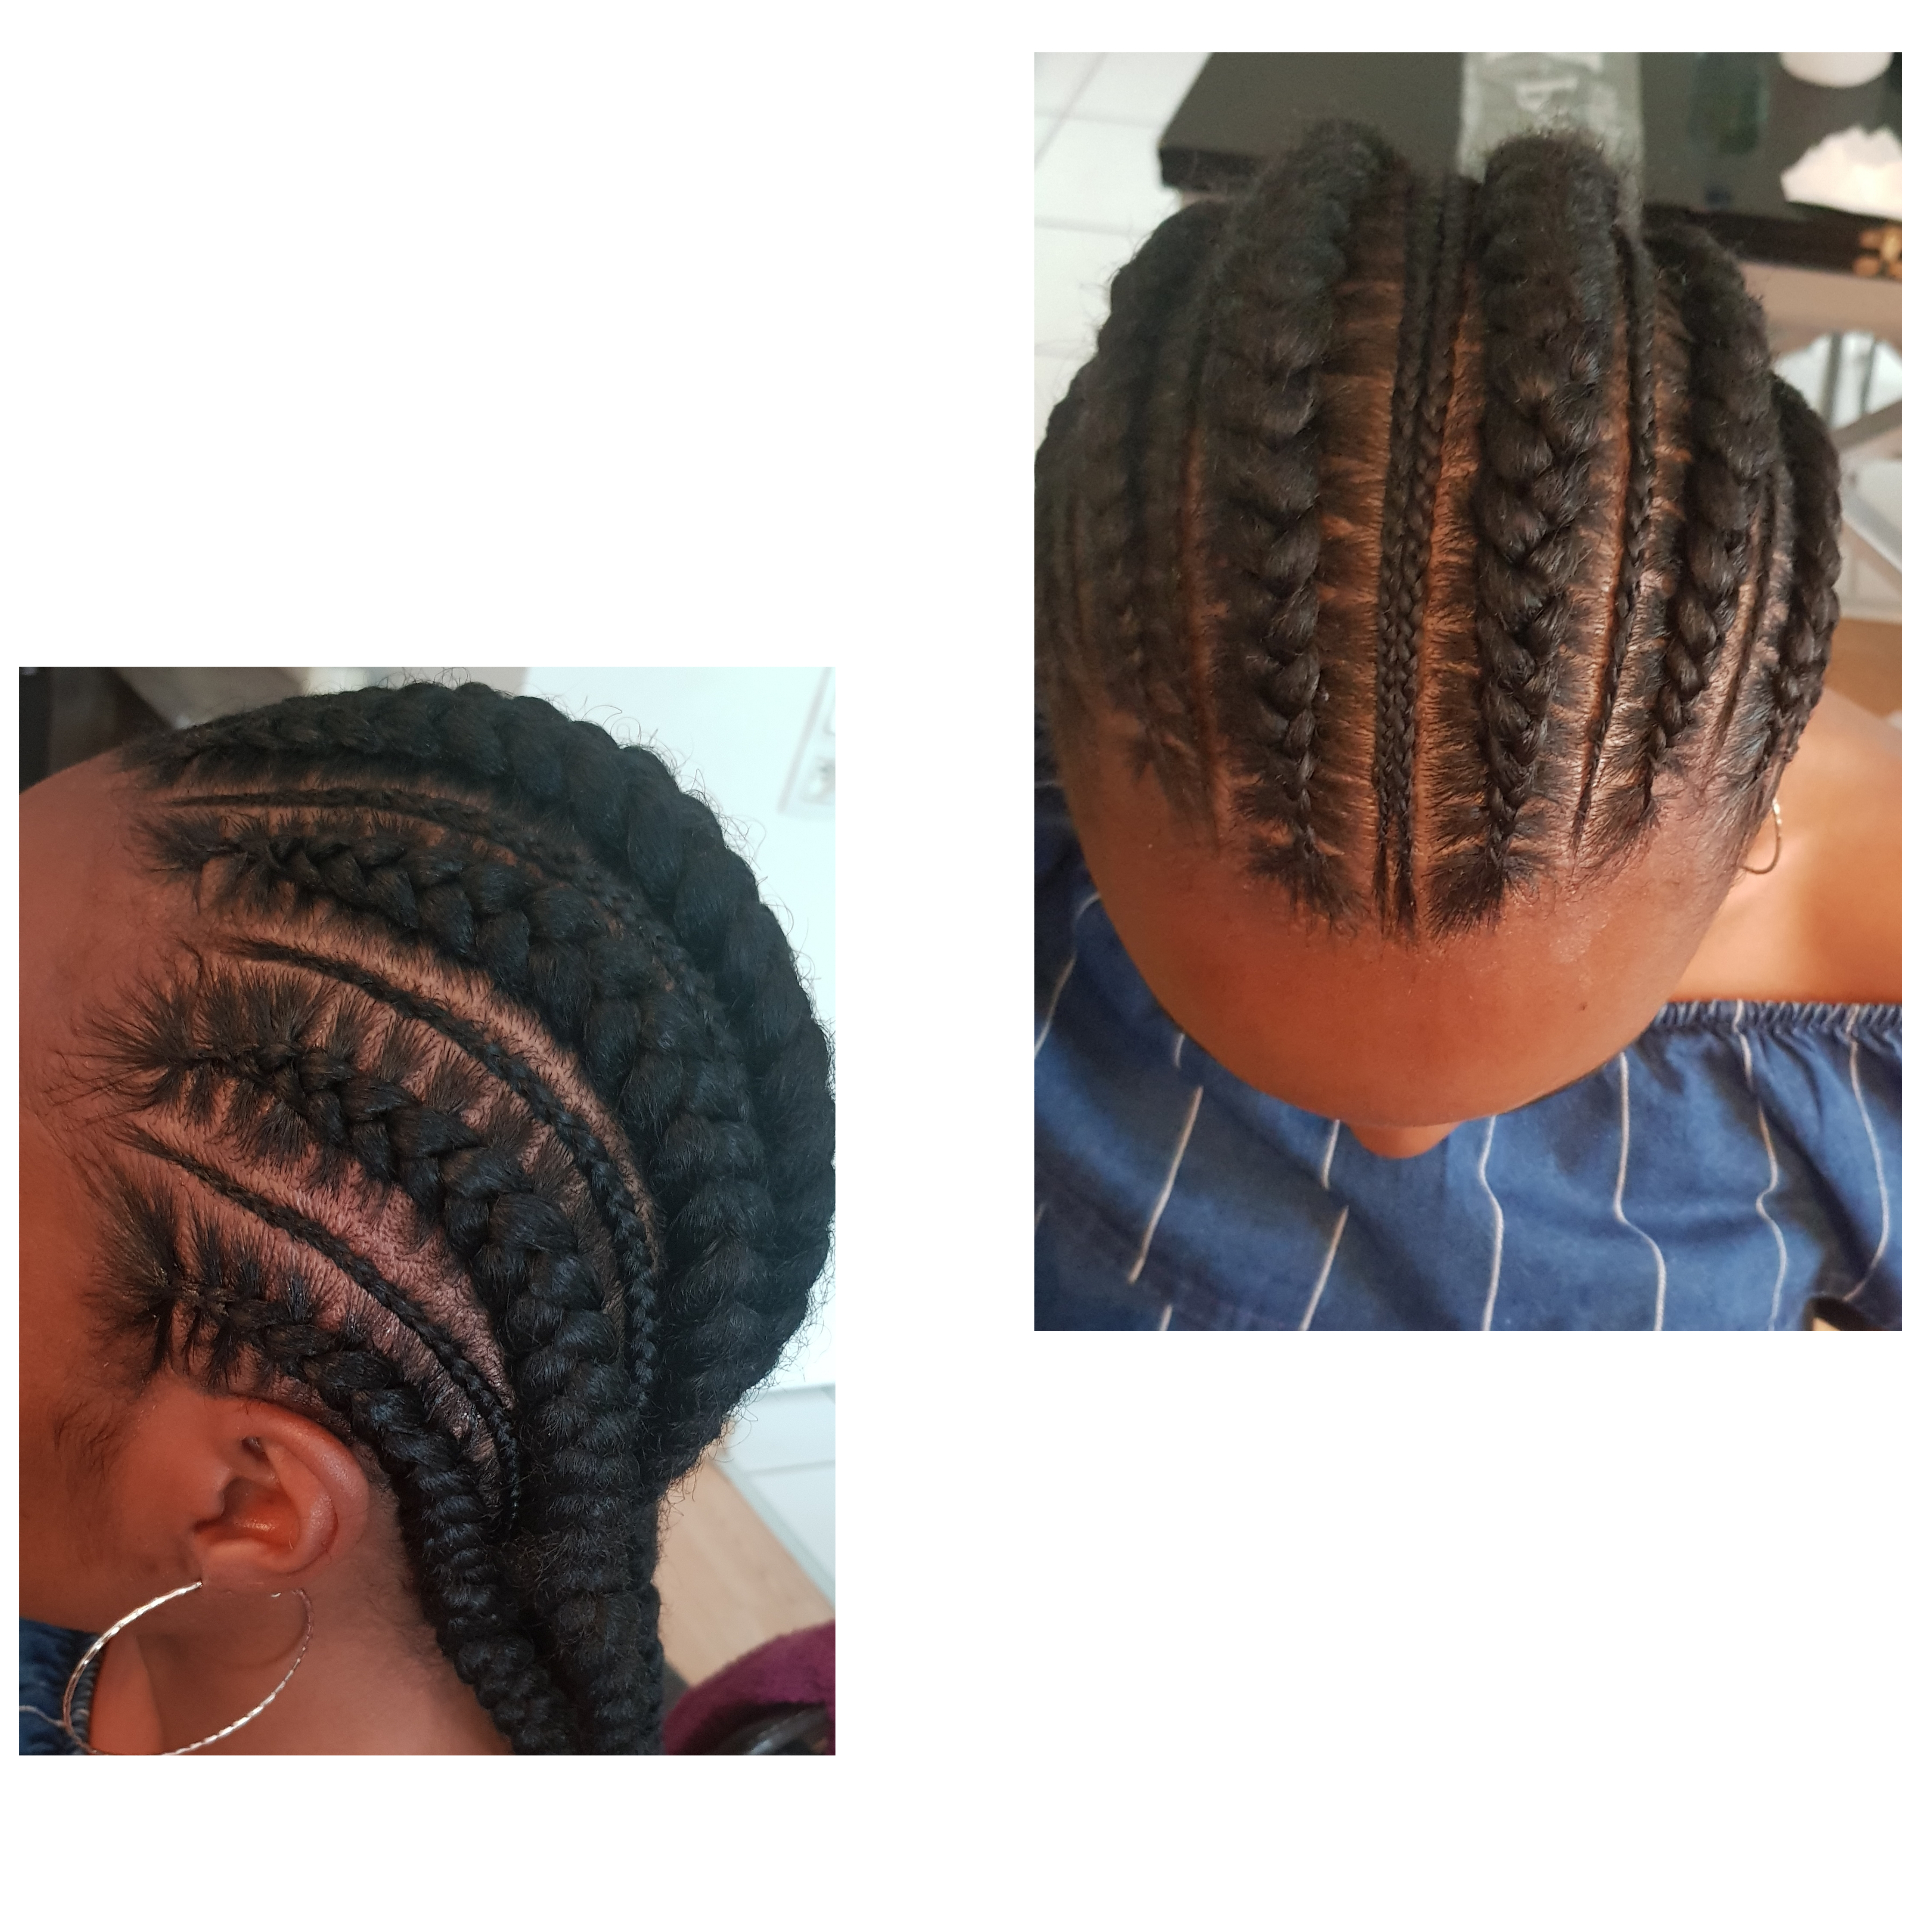 salon de coiffure afro tresse tresses box braids crochet braids vanilles tissages paris 75 77 78 91 92 93 94 95 XYHALUKY